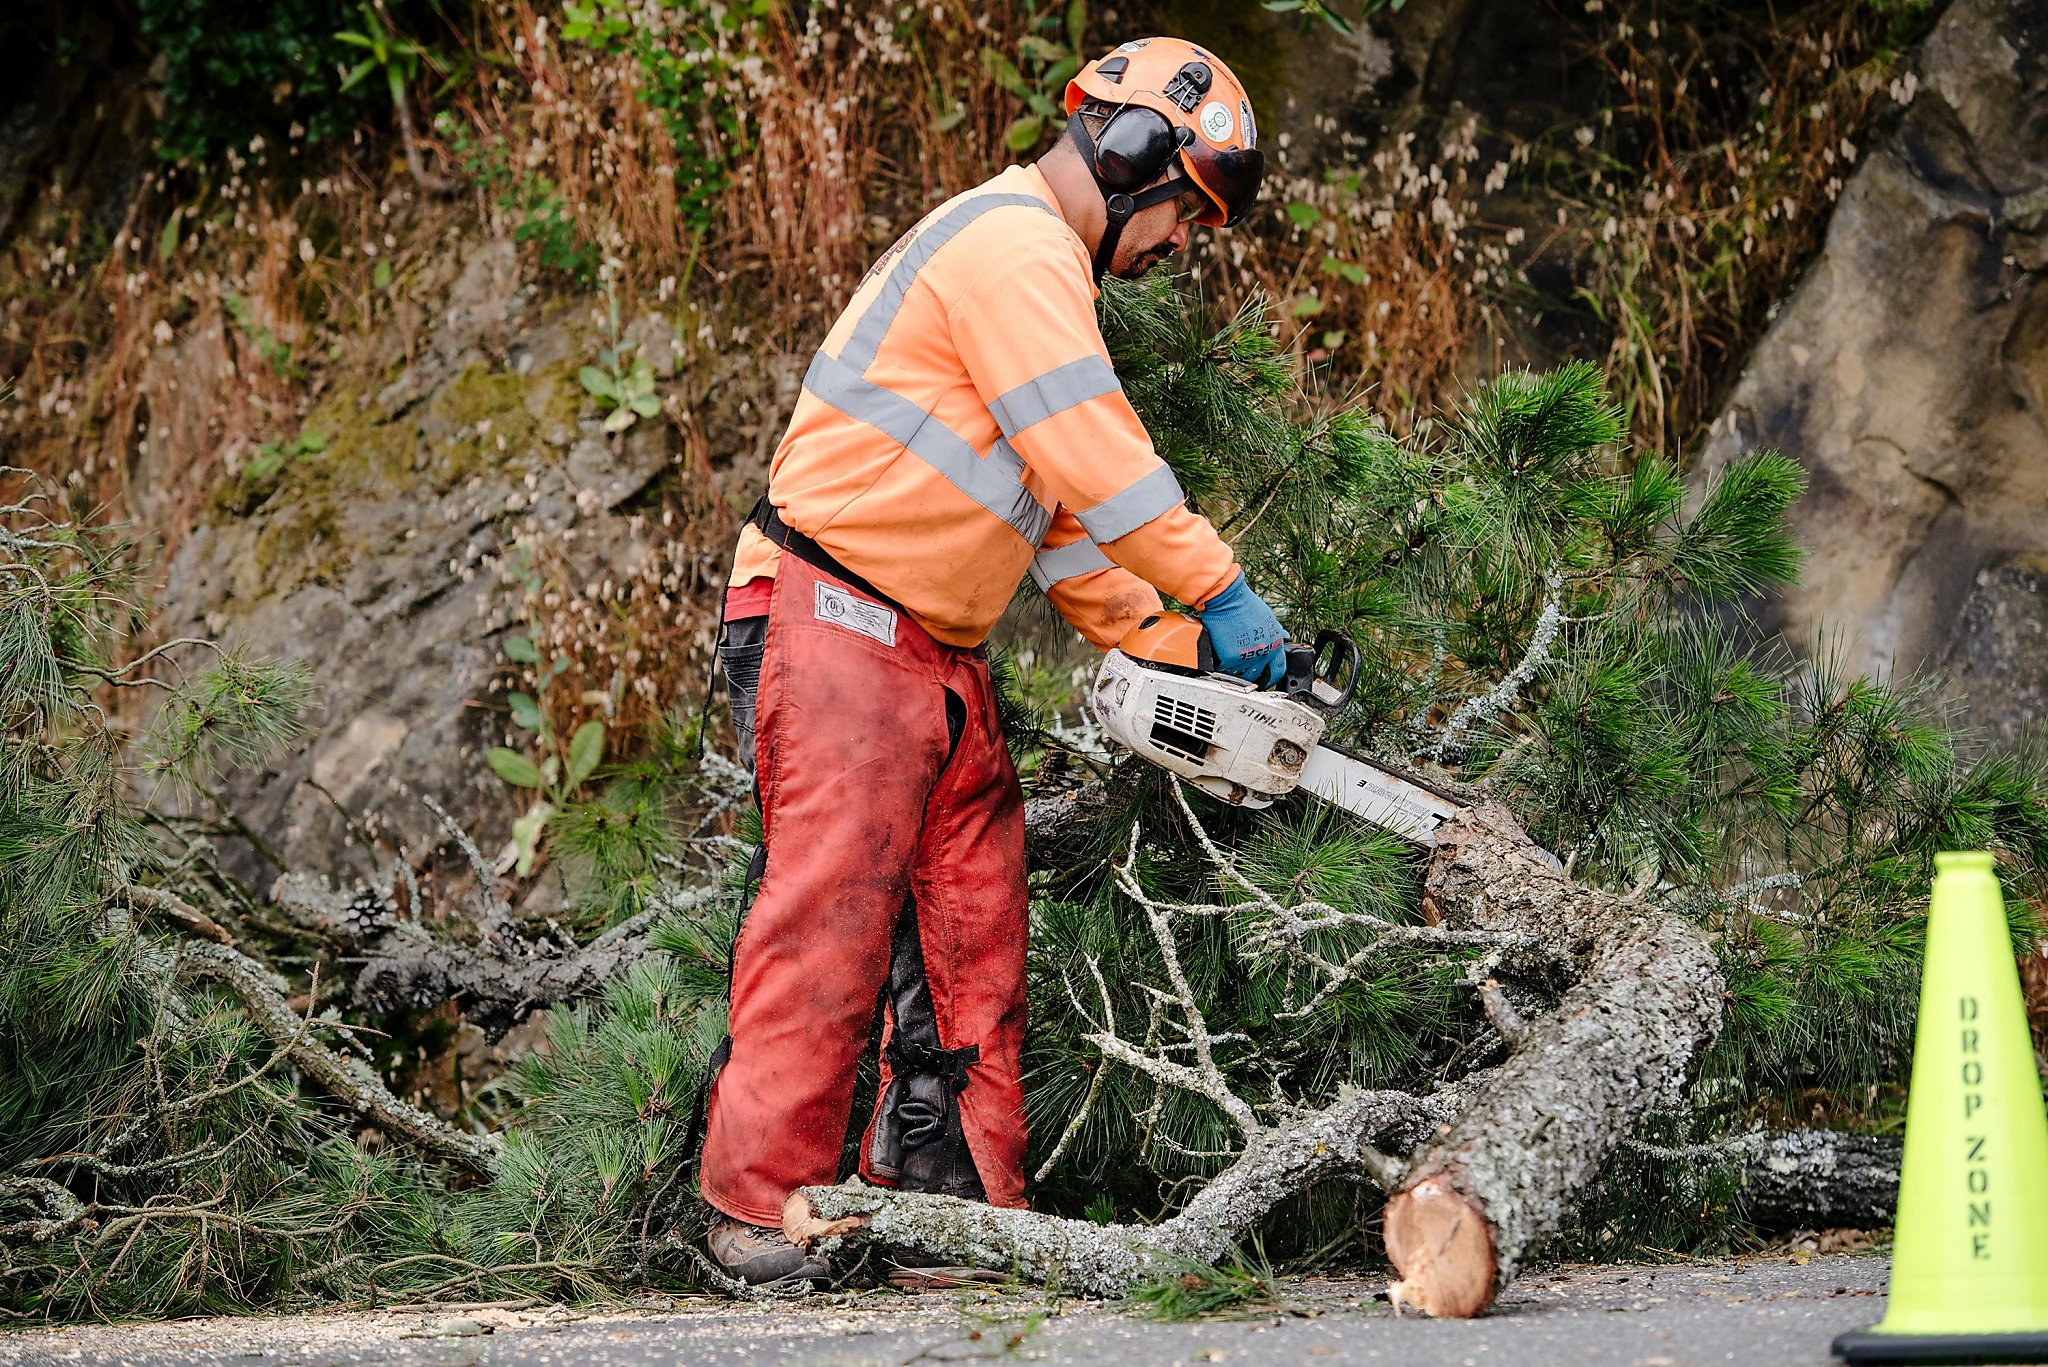 PG&E's 2020 tree trimming failures lead to extra regulatory oversight